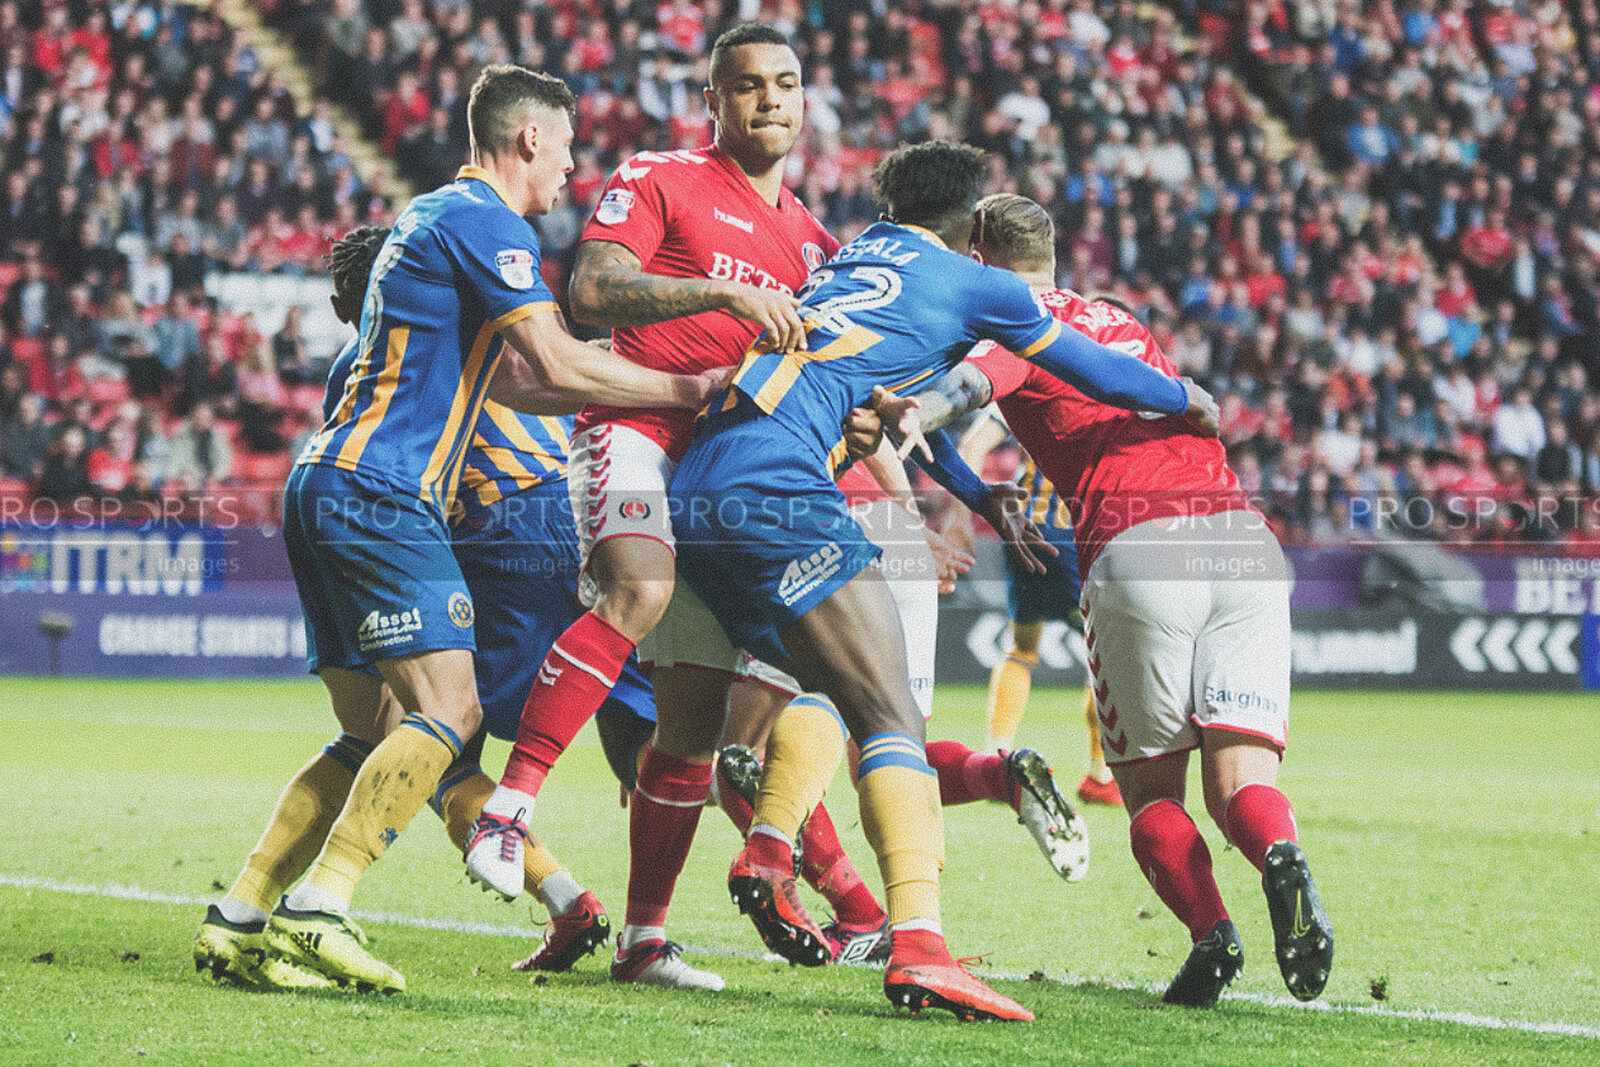 Charlton Athletic Vs Shrewsbury Town